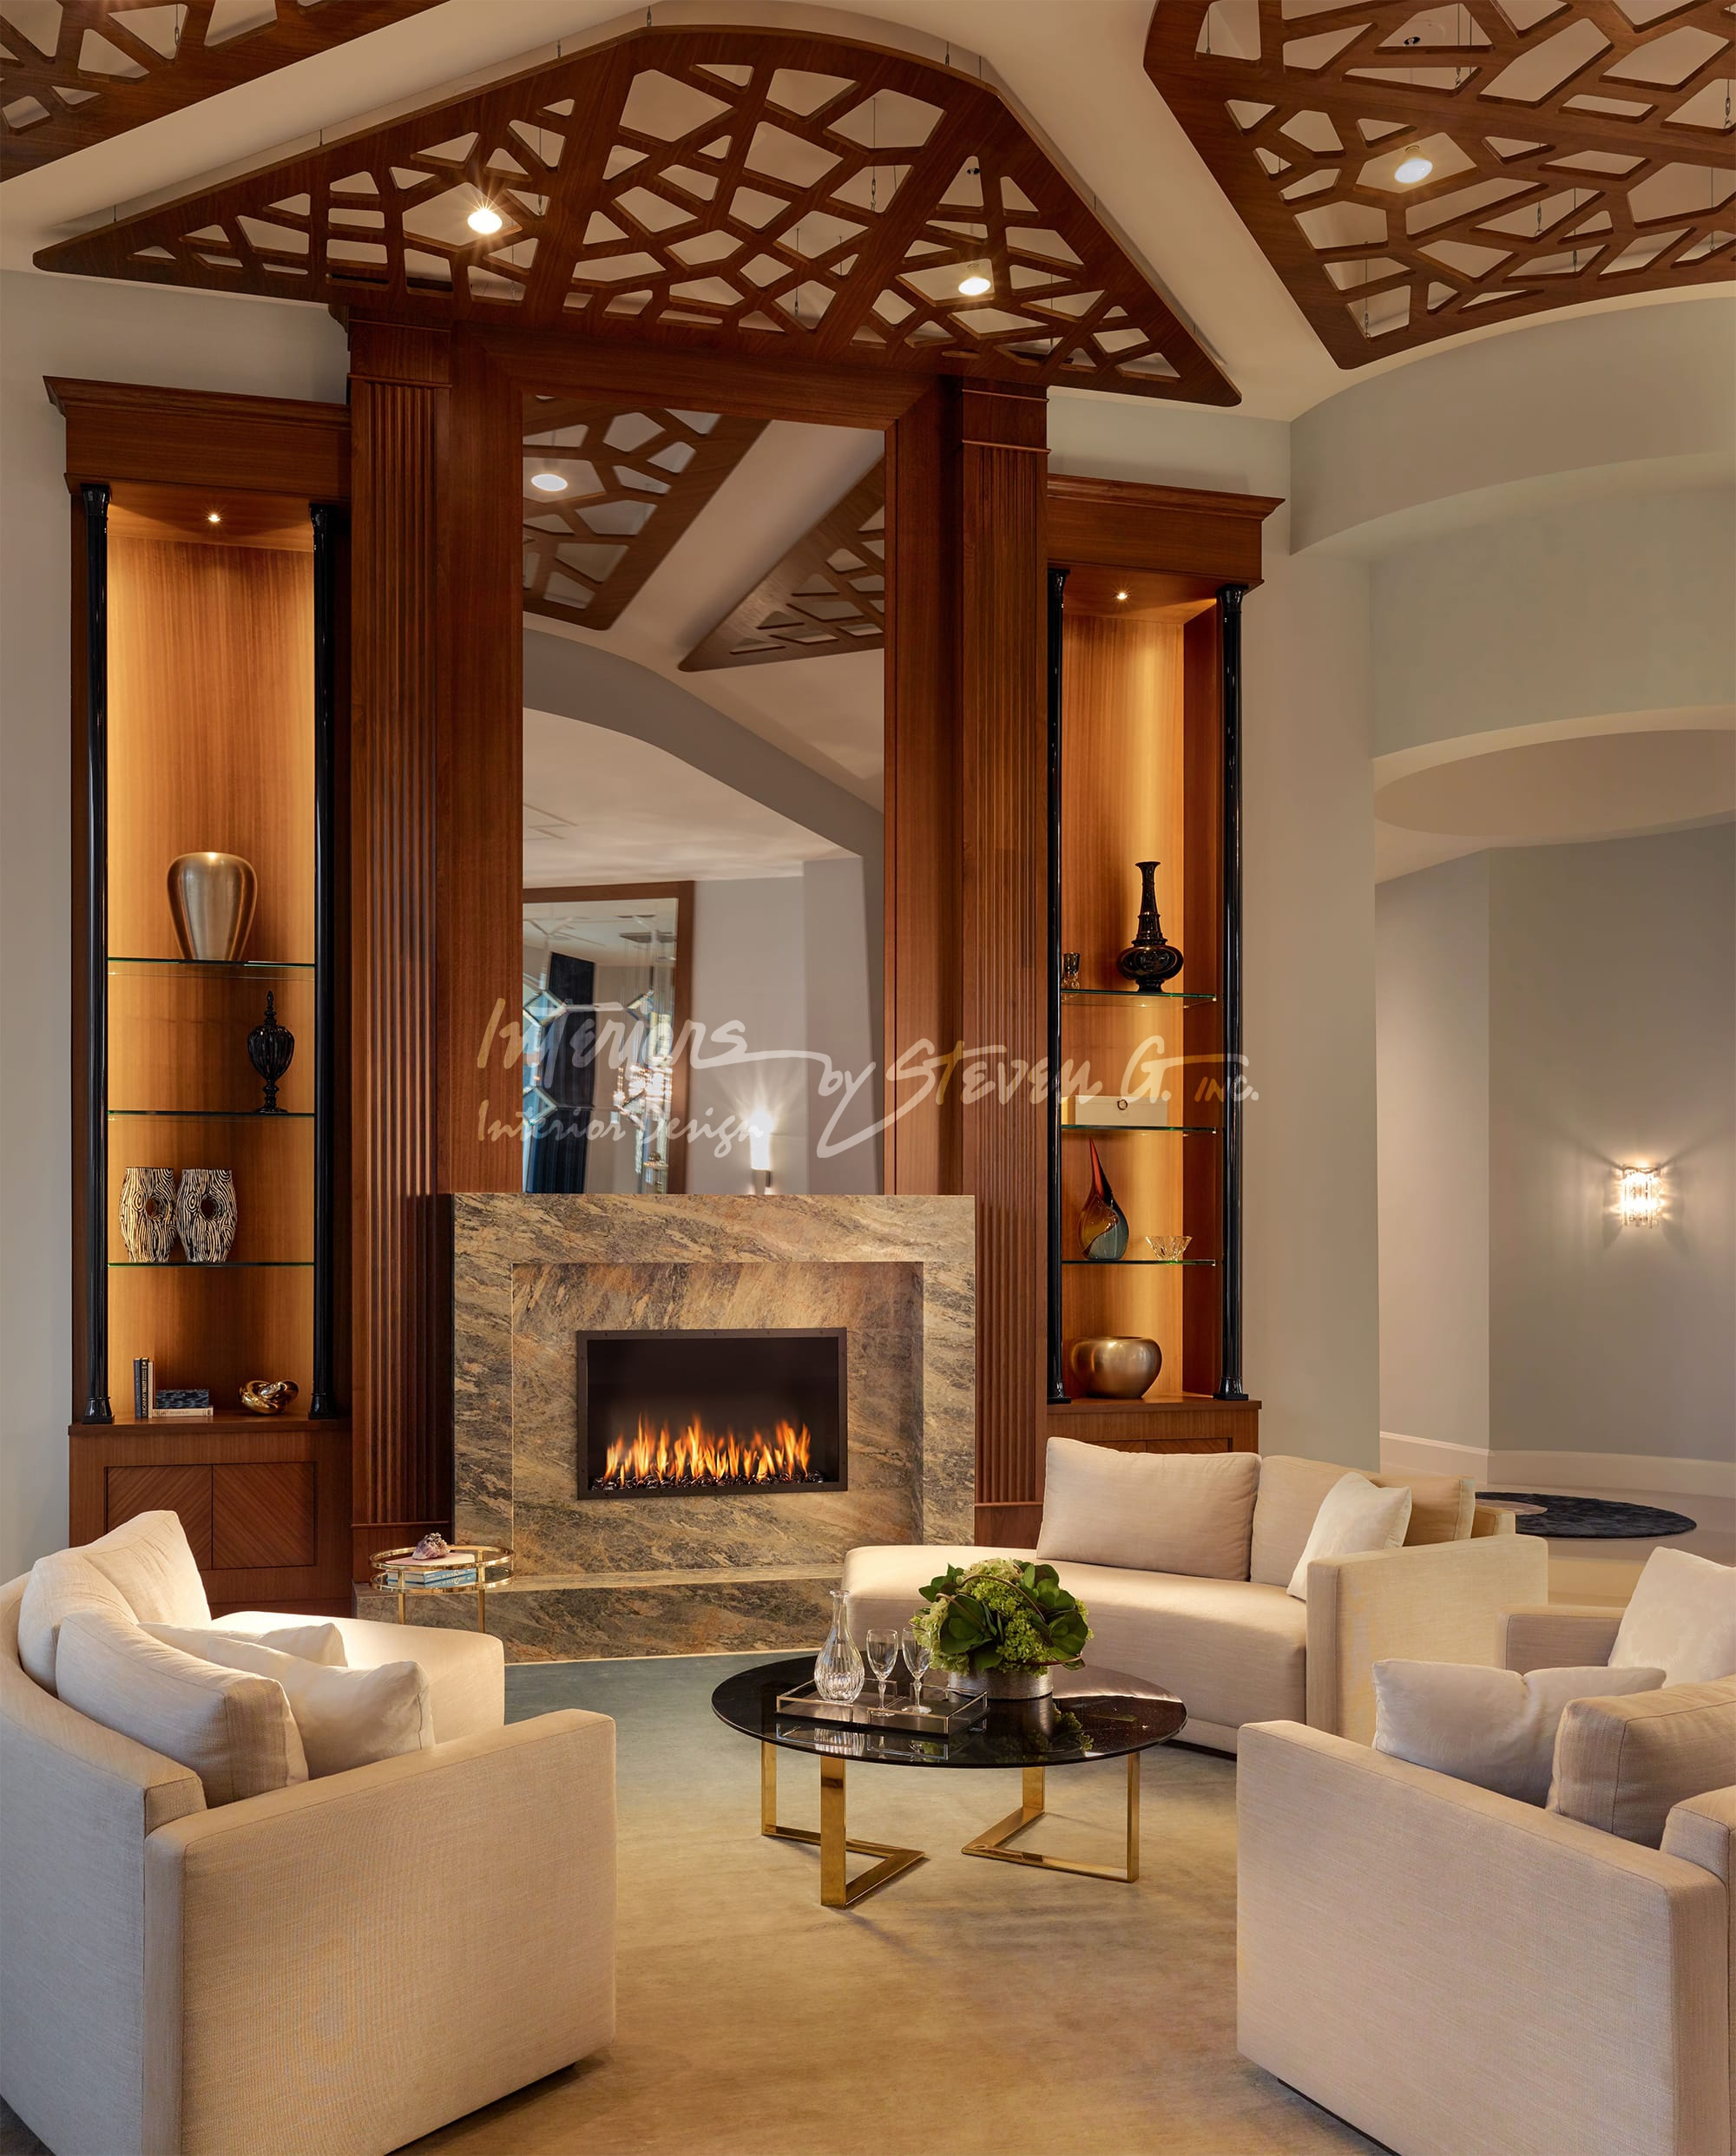 Interior Design Boca Raton Luxury Interior Design In Boca Raton | Transitional